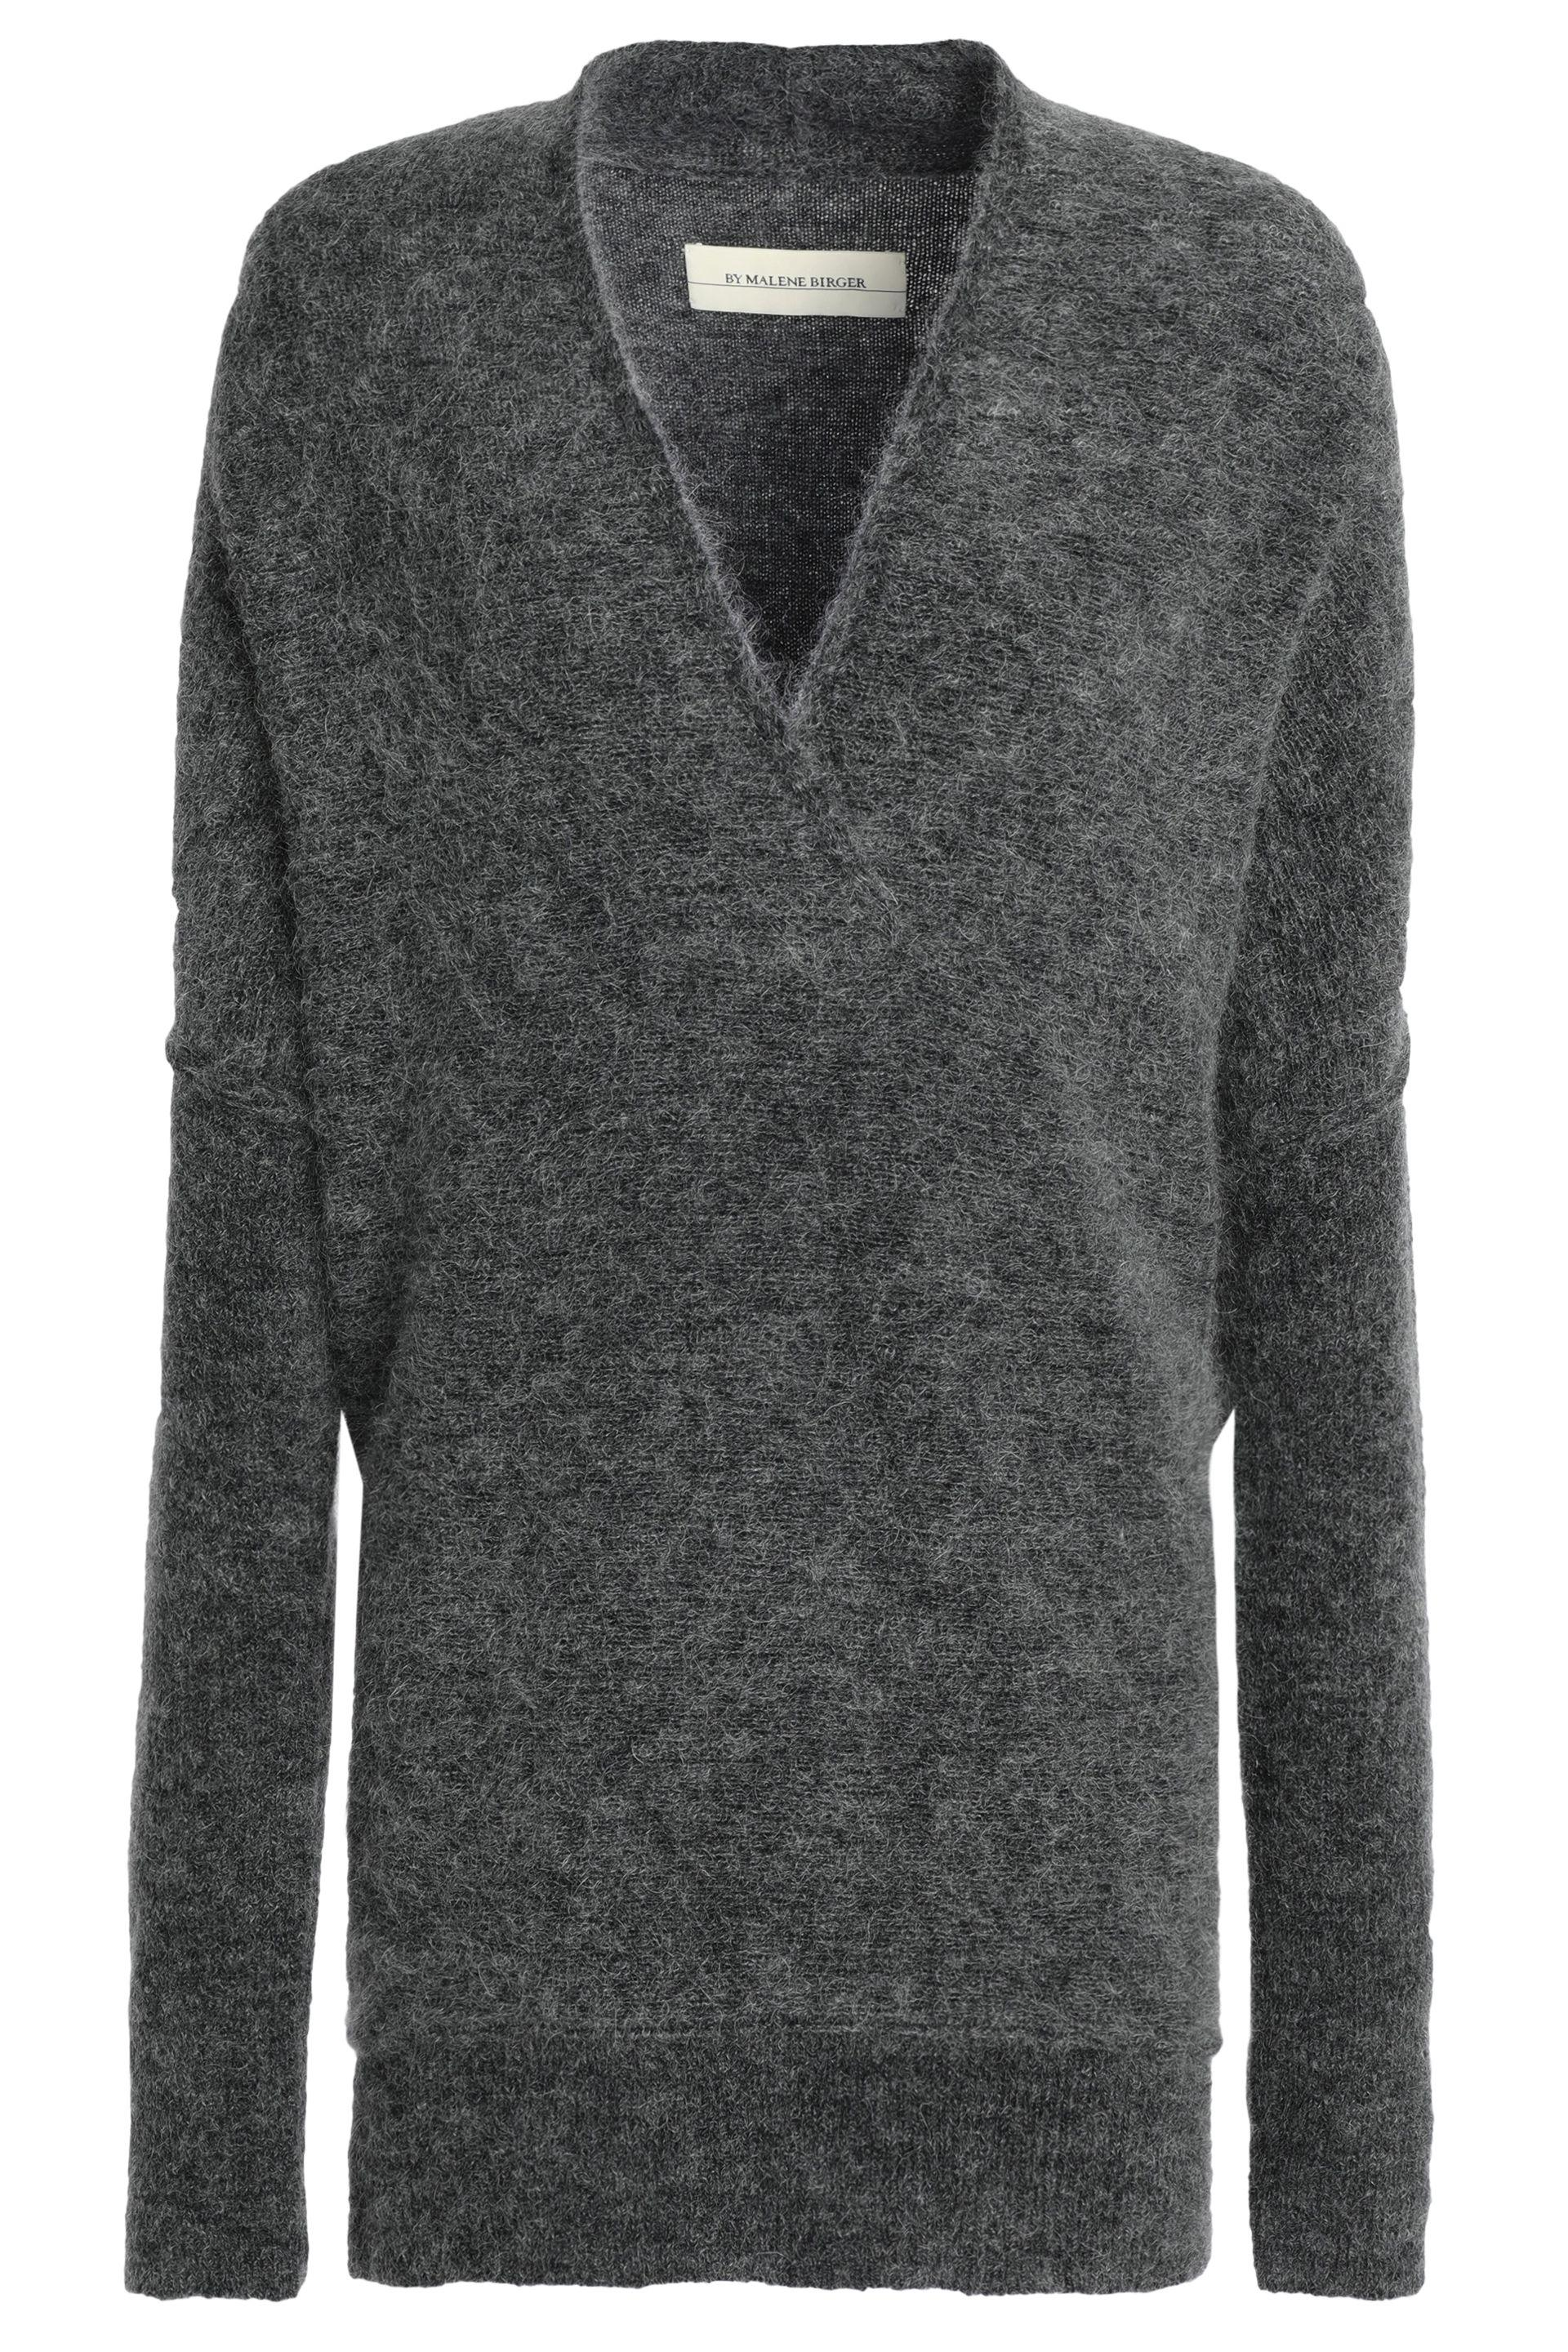 585c204d17e5 By Malene Birger - Gray Woman Knitted Sweater Anthracite - Lyst. View  fullscreen